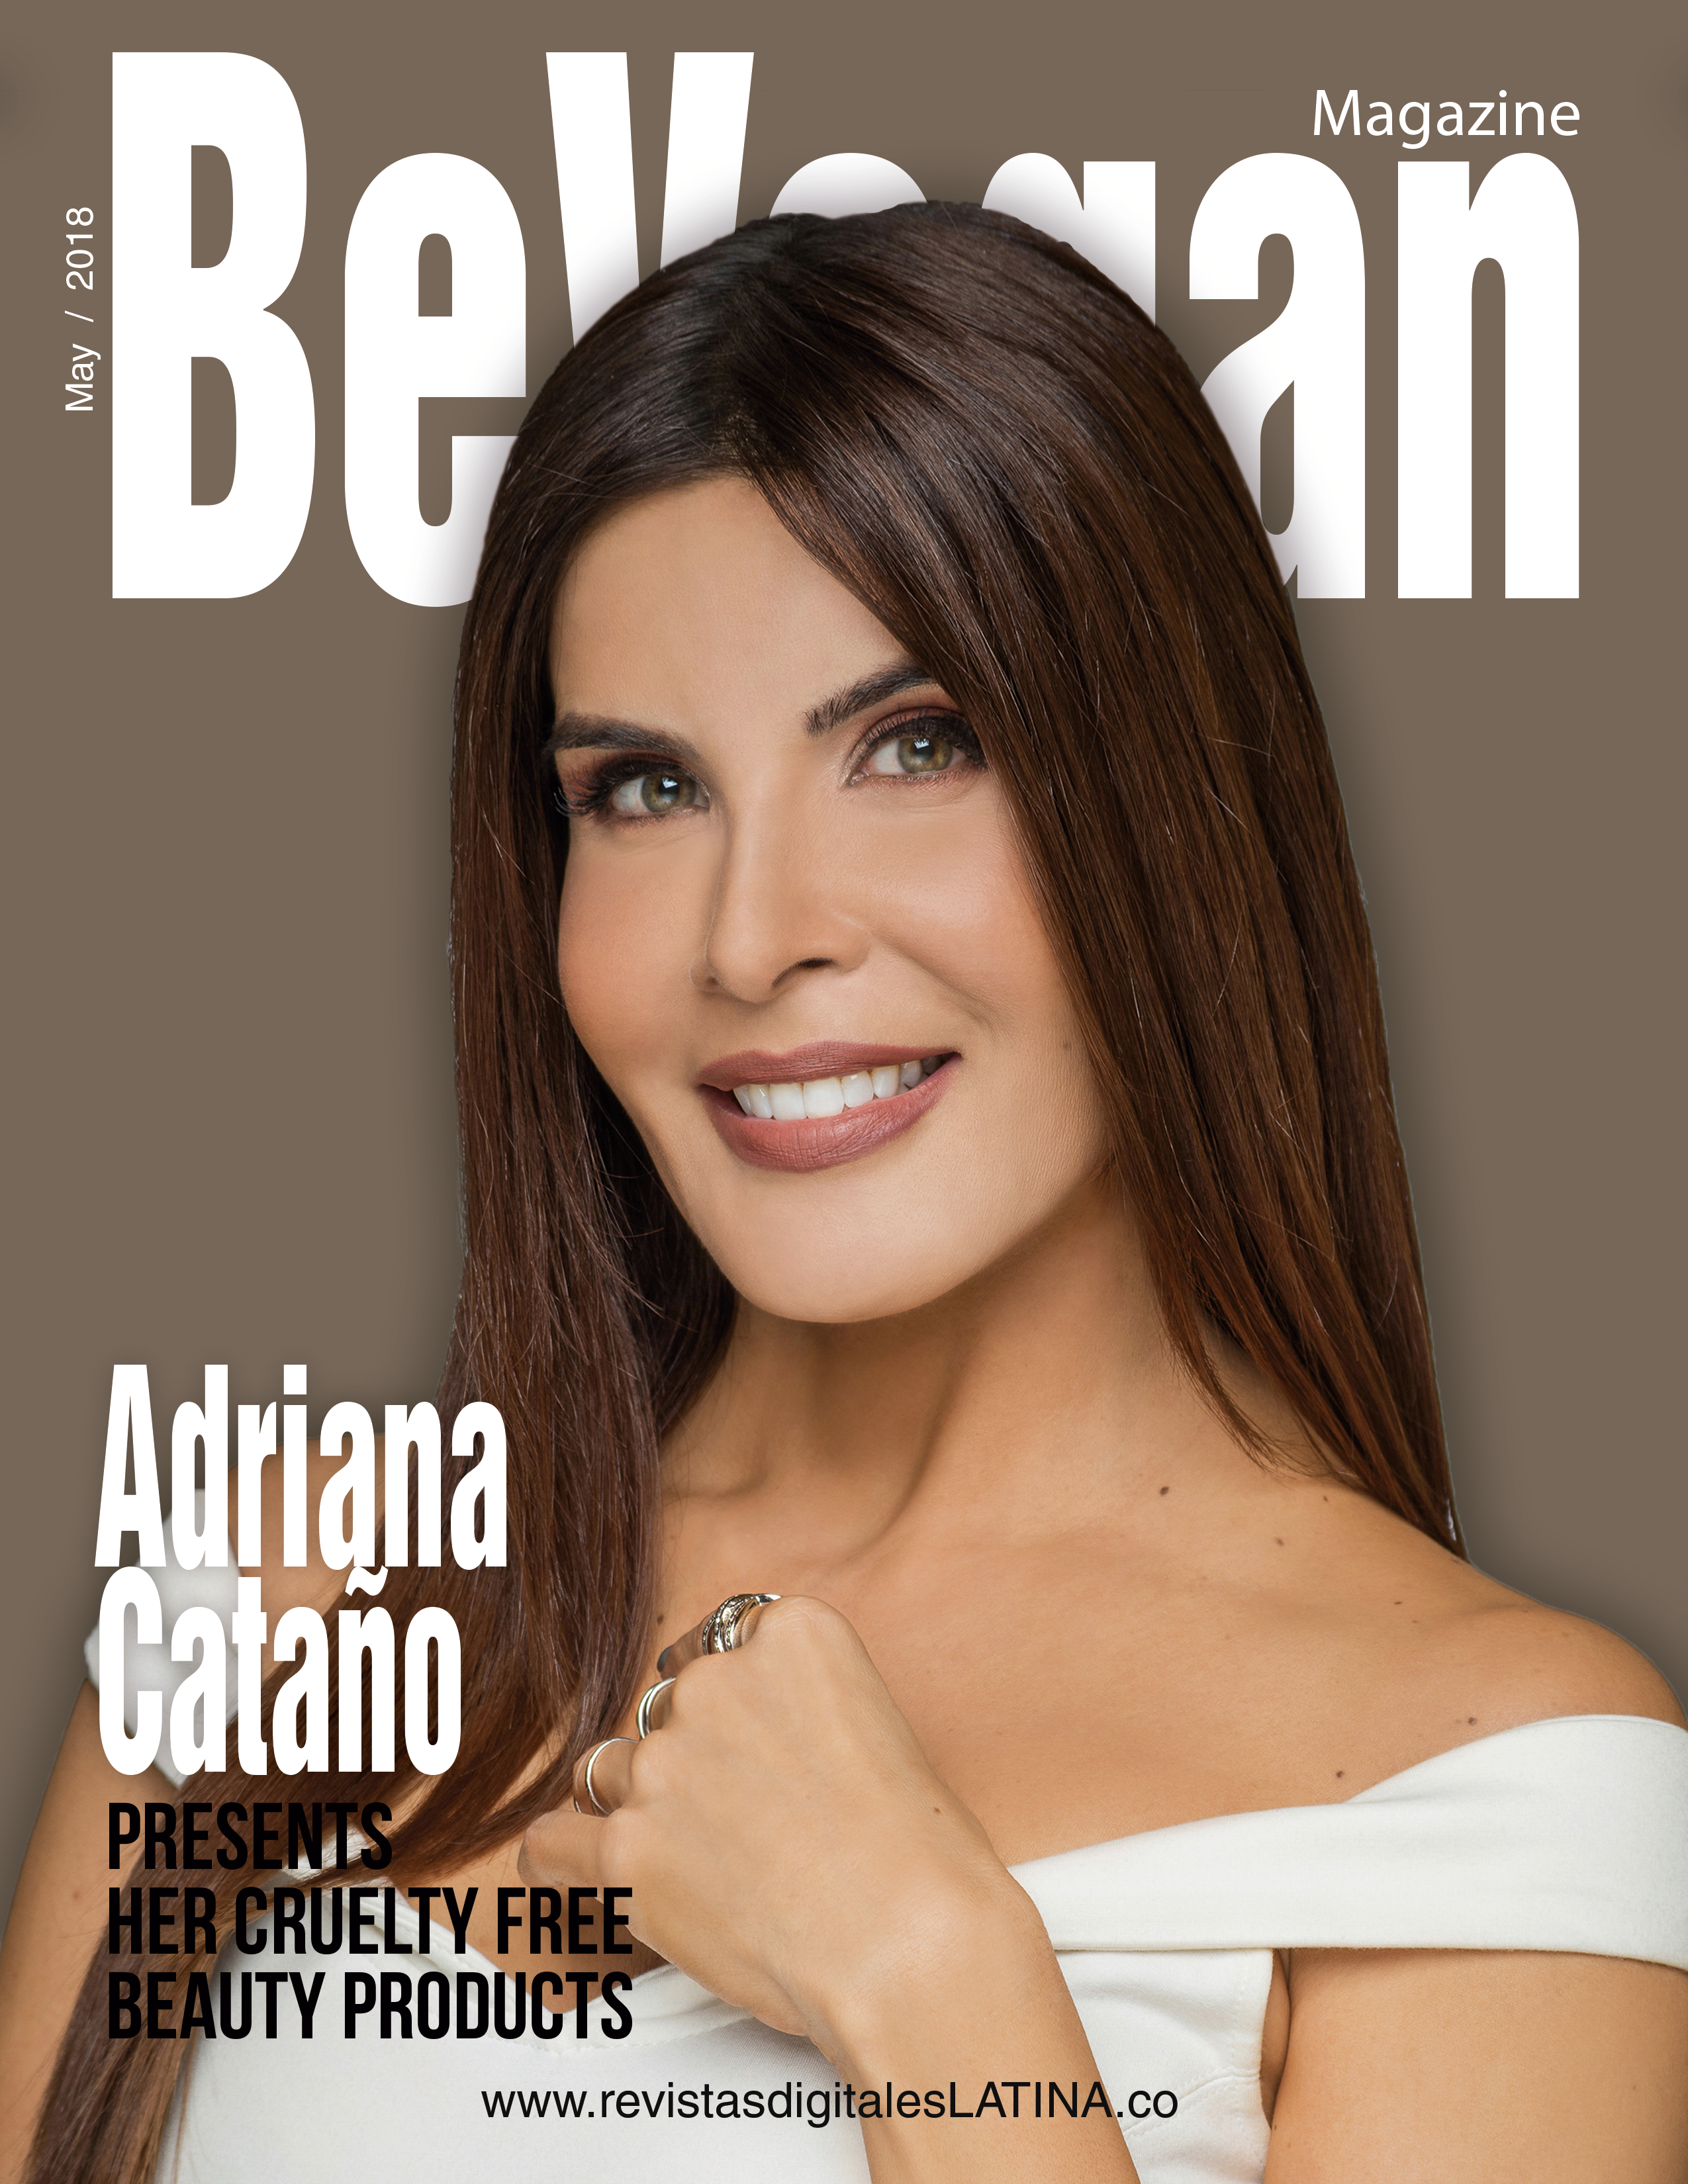 Be Vegan Magazine